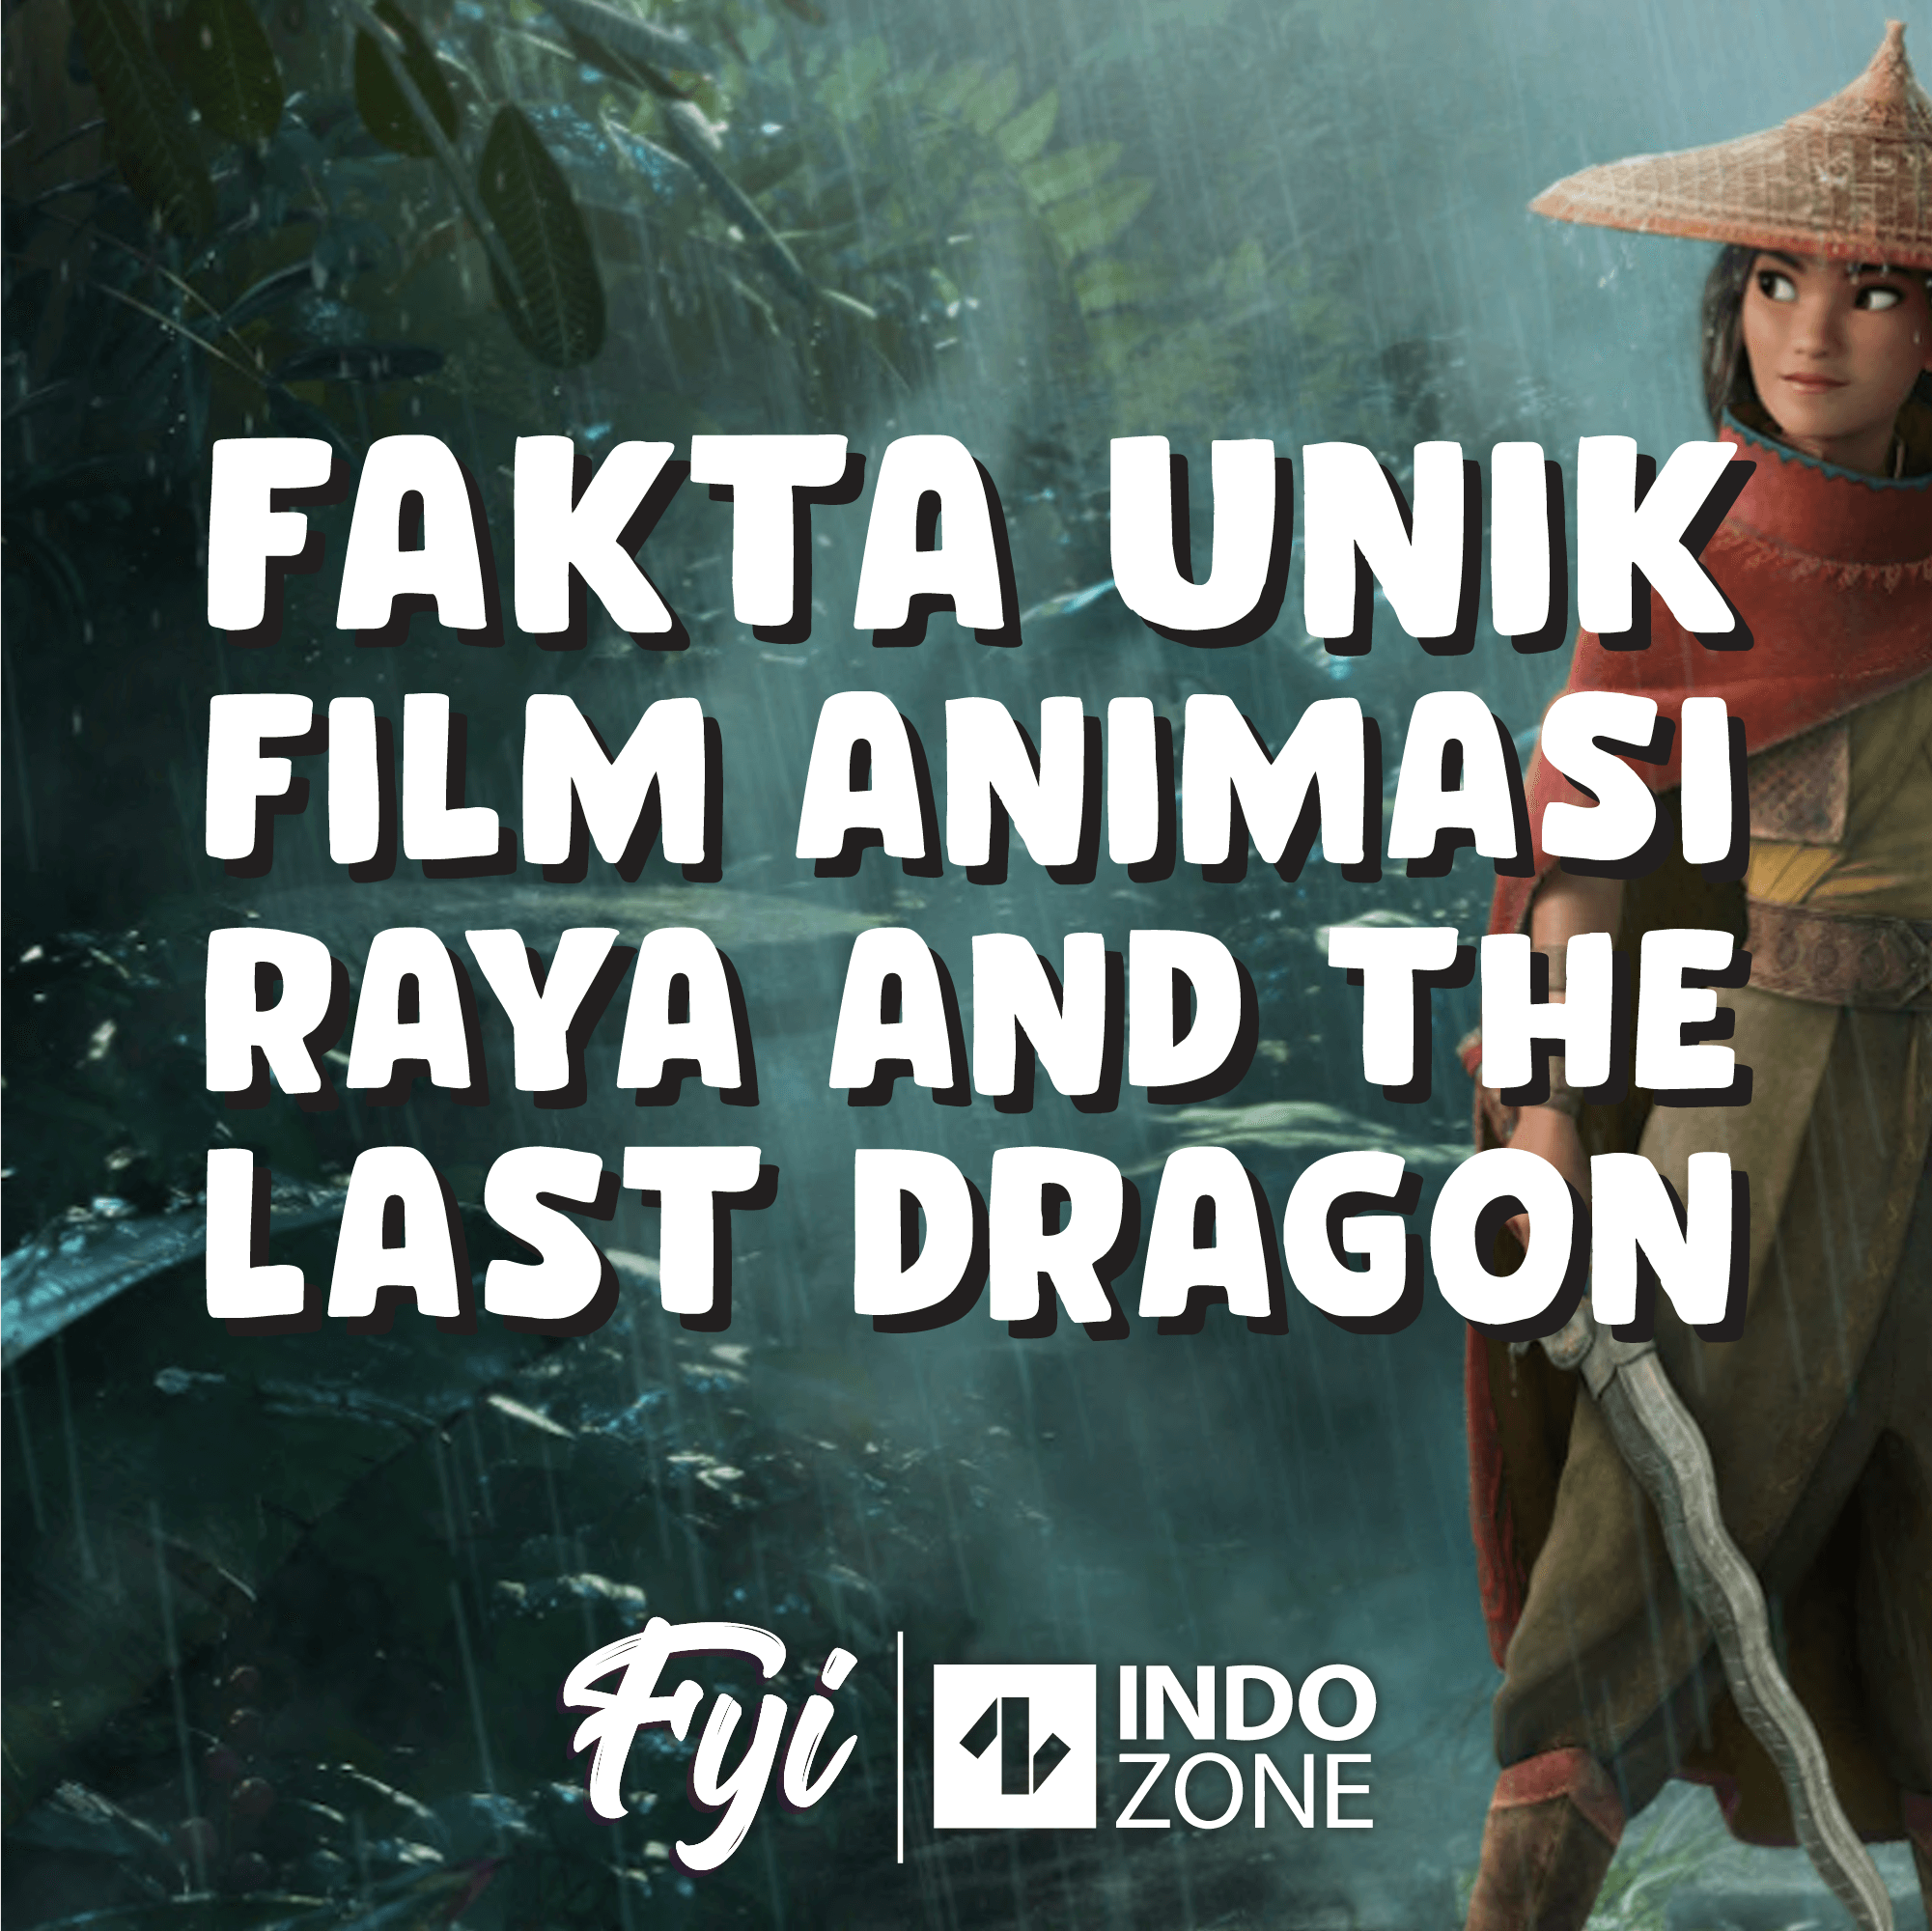 Fakta Unik Film Animasi Raya and The Last Dragon